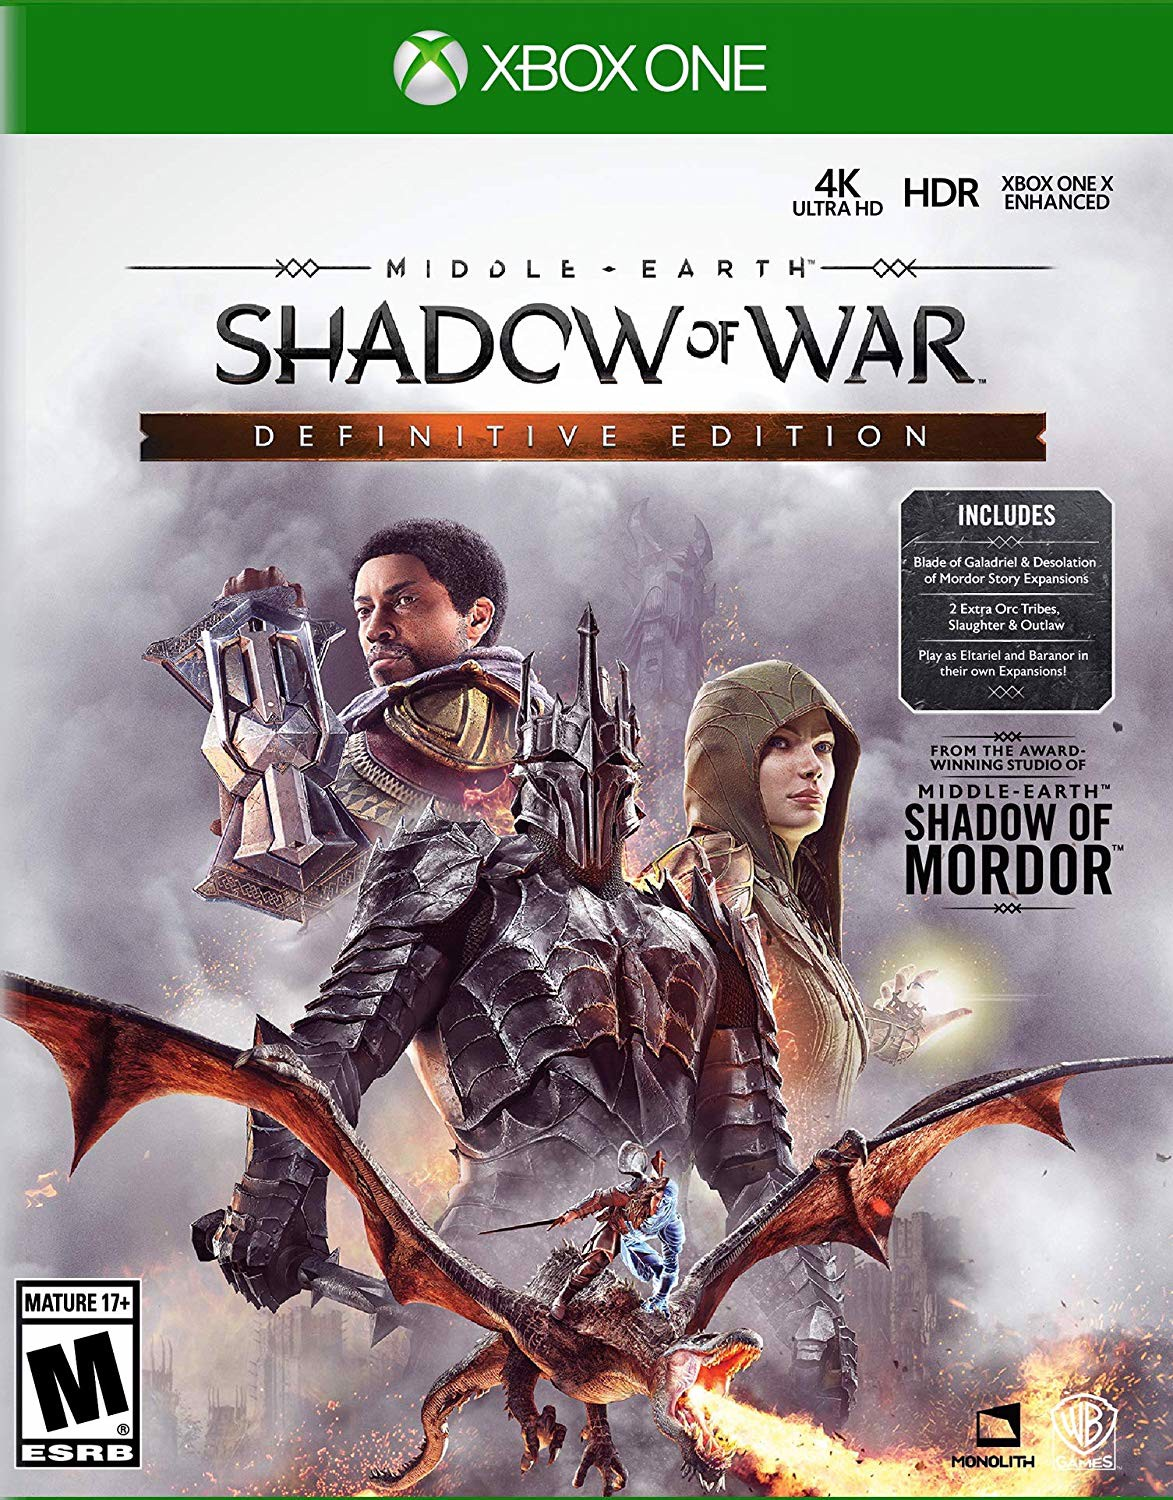 281 - Middle-Earth: Shadow of War Definitive Edition